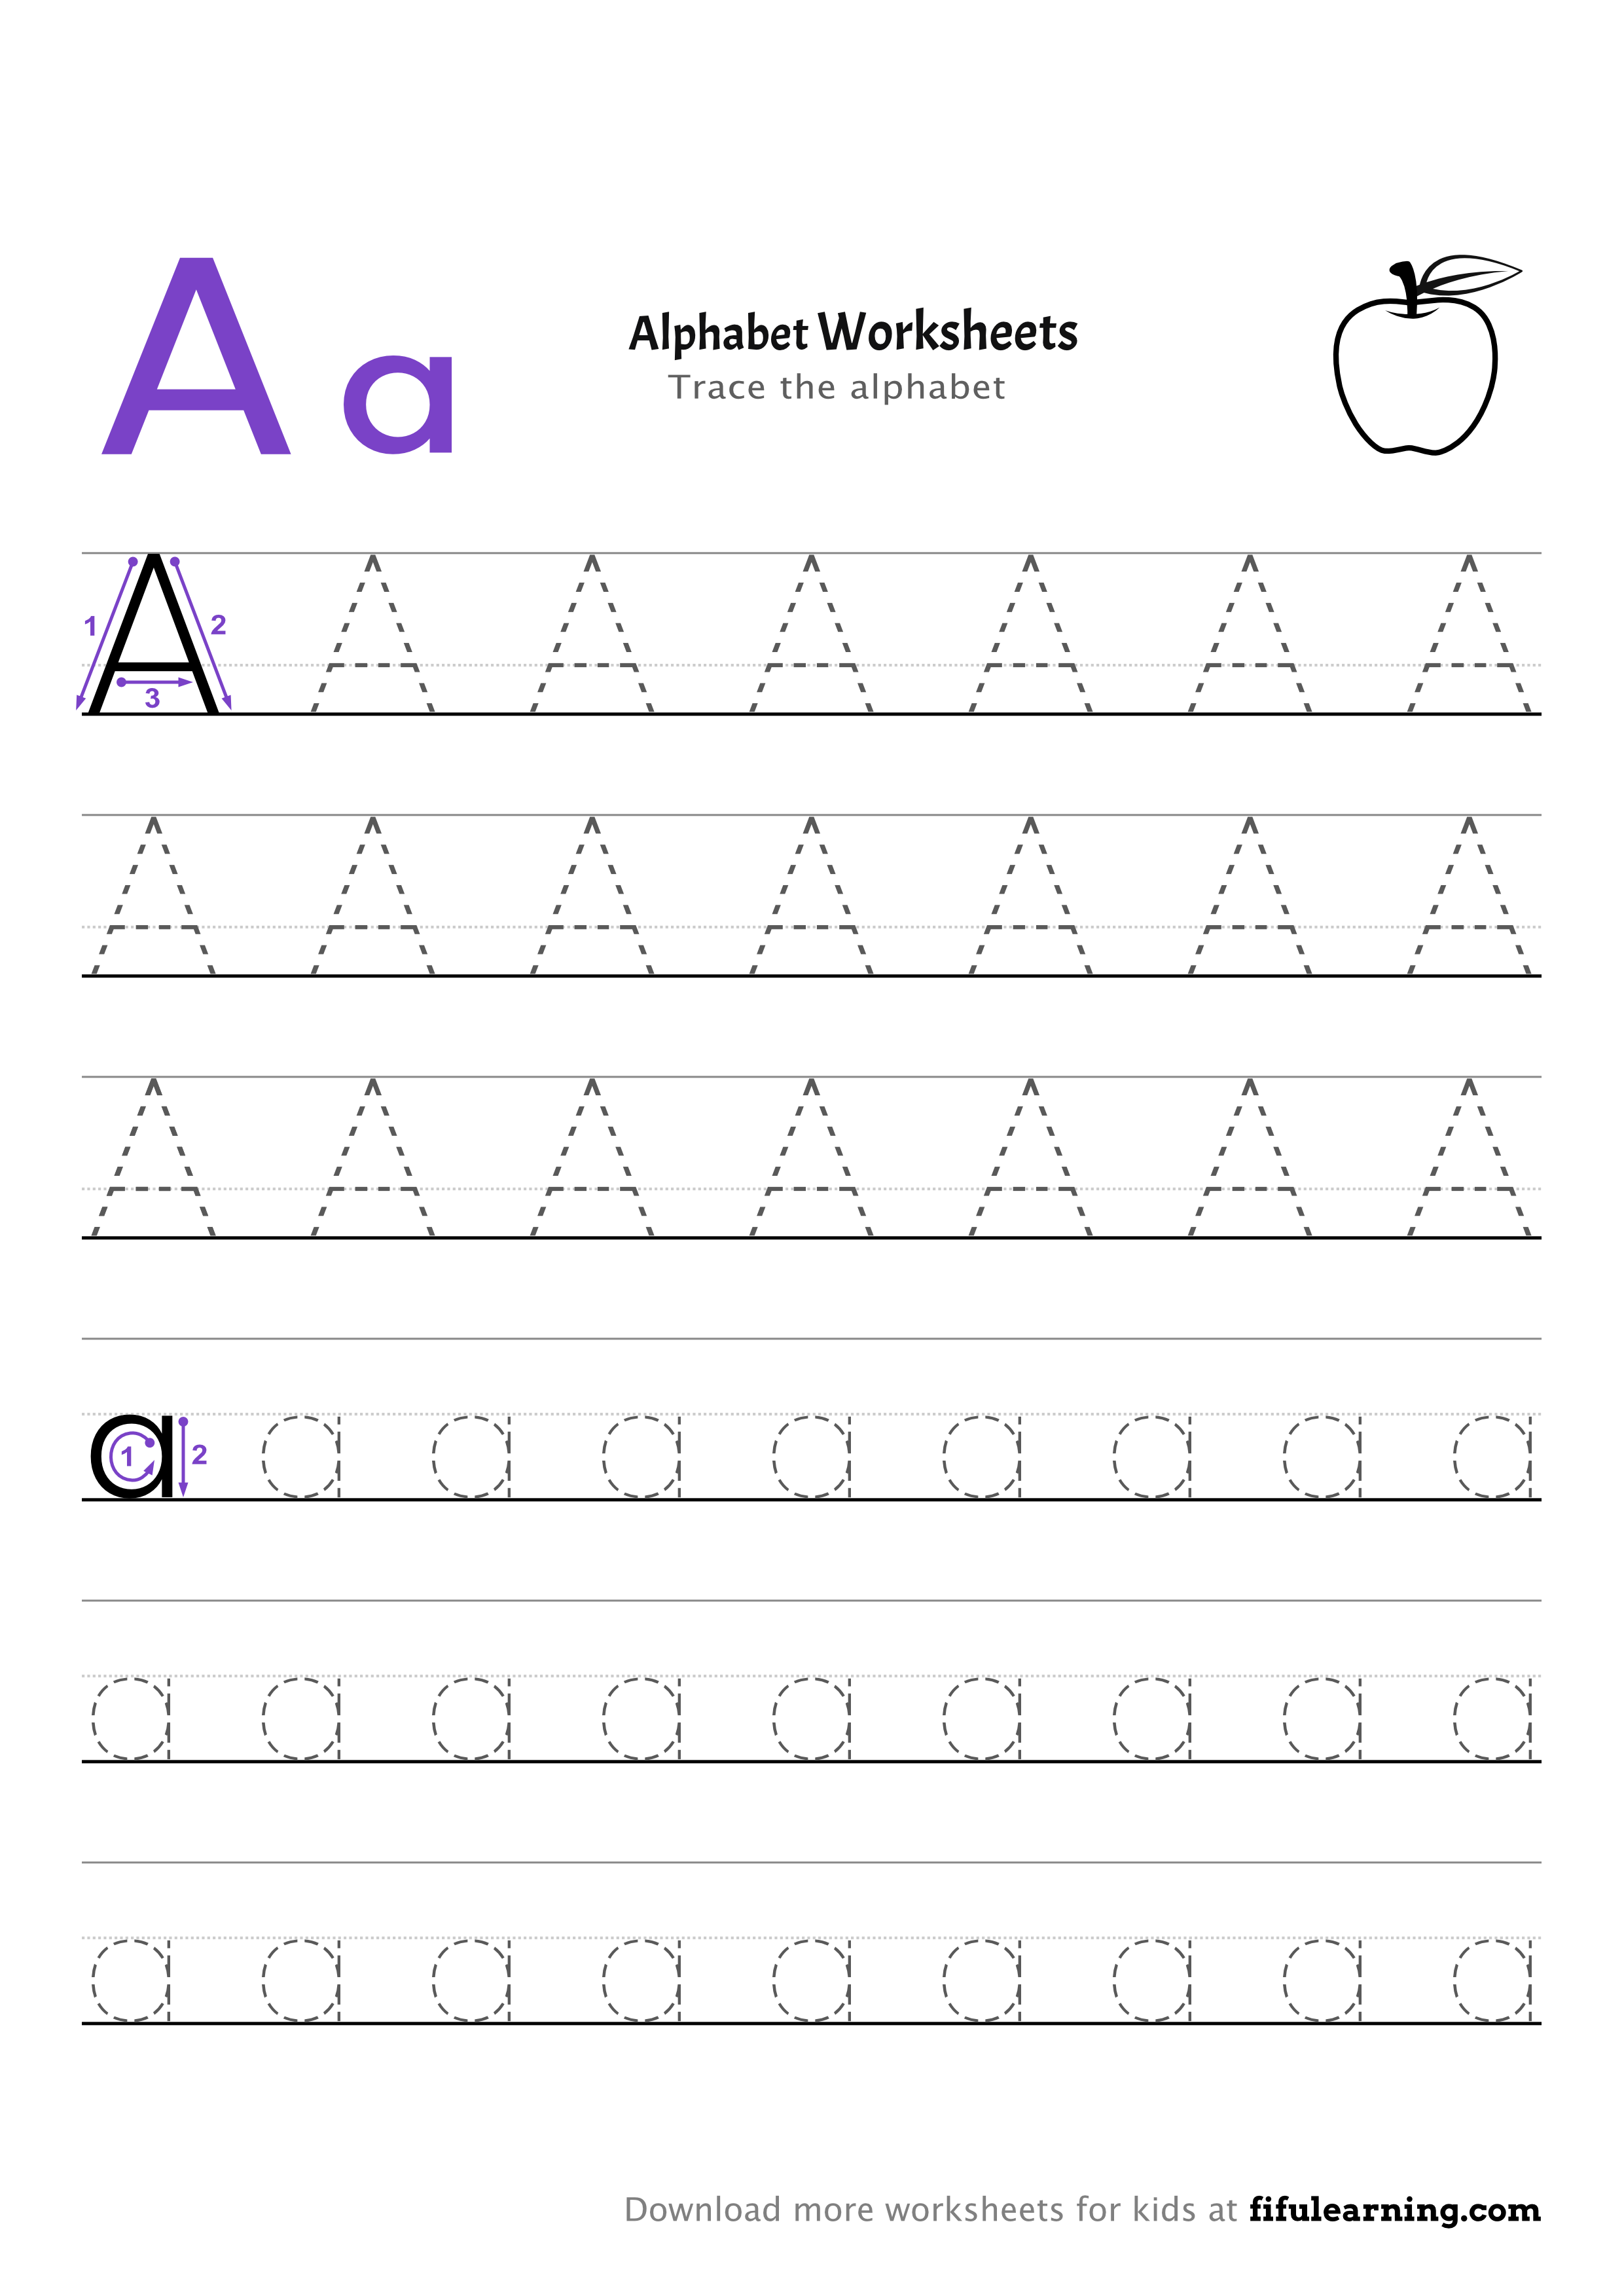 Tracing Alphabet Worksheet For Kids A A Worksheets Alphabet Worksheets Worksheets For Kids [ 3507 x 2481 Pixel ]